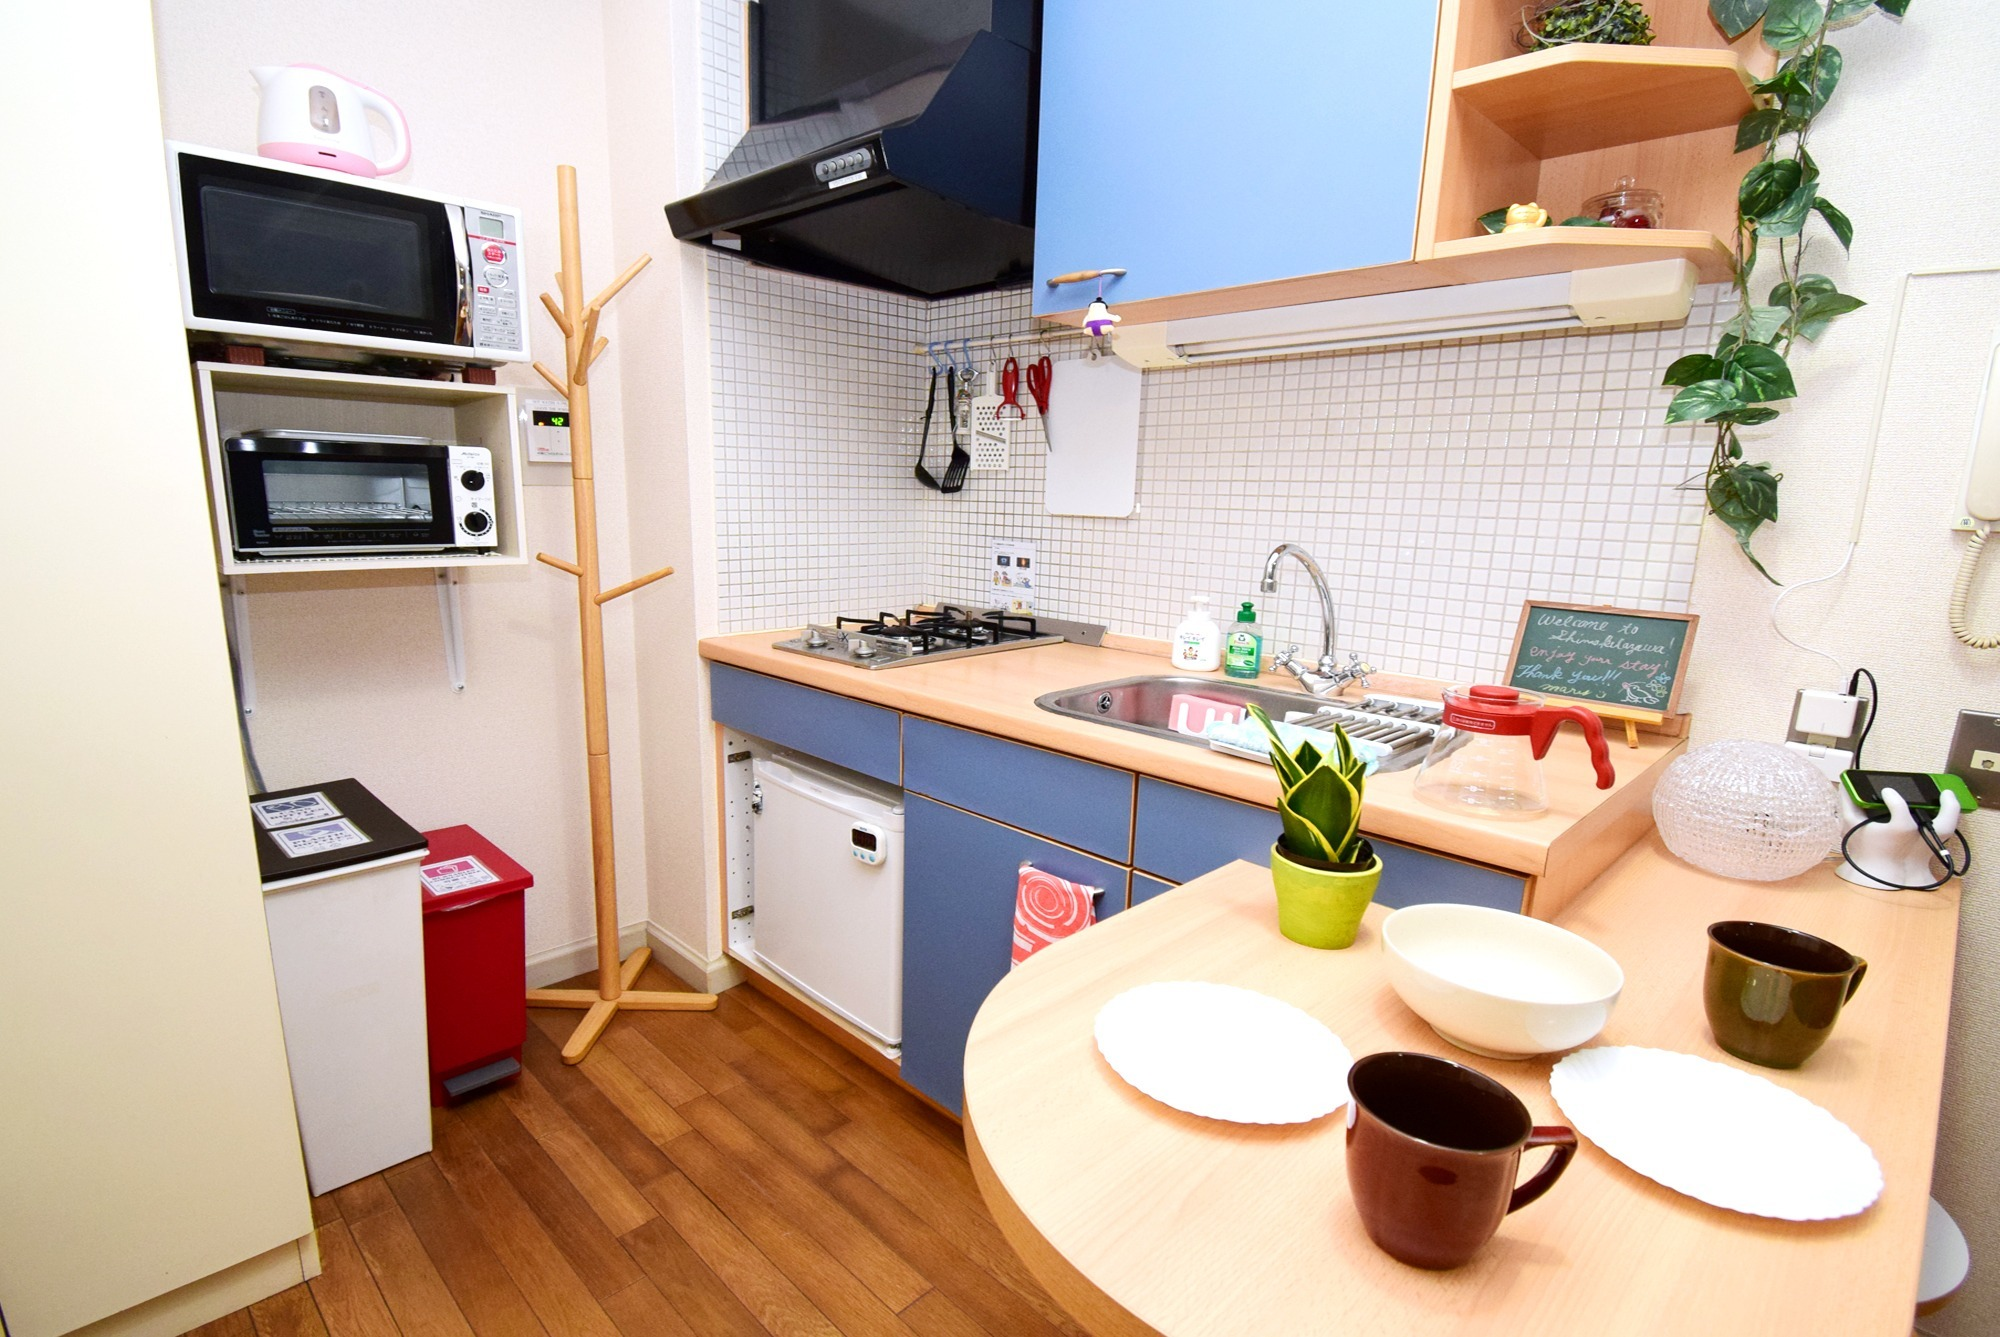 Enjoy cooking! Toaster, microwave, refrigerator and kitchen.